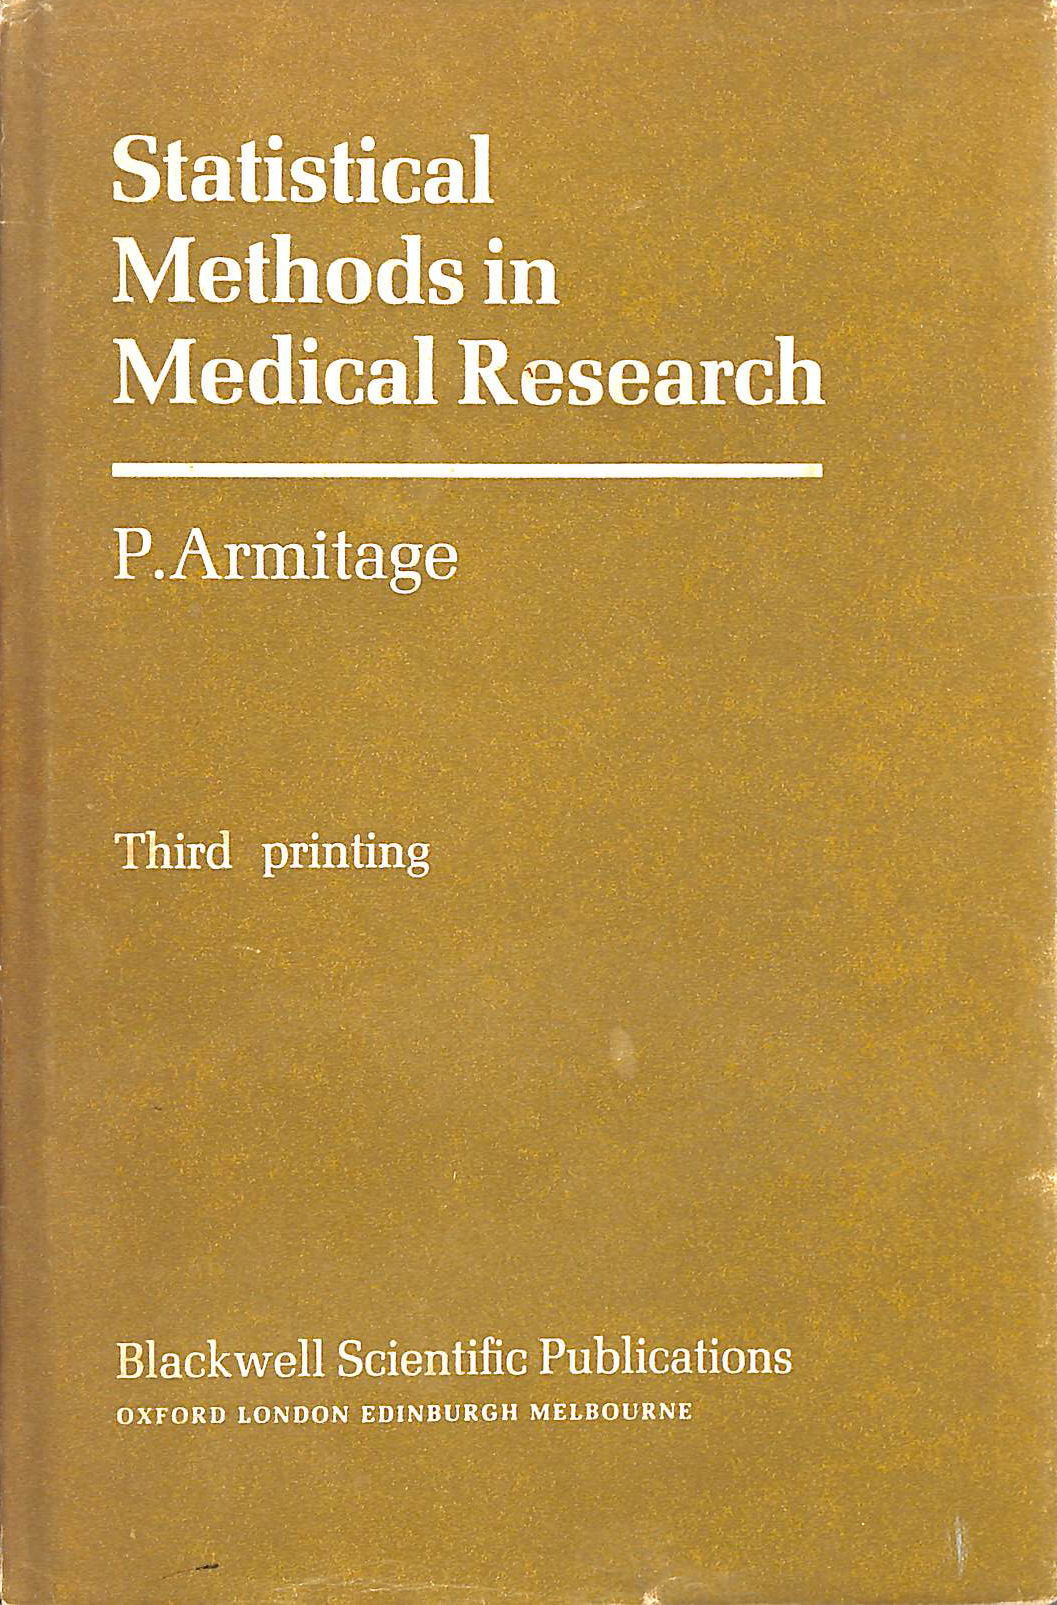 Image for Statistical Methods in Medical Research